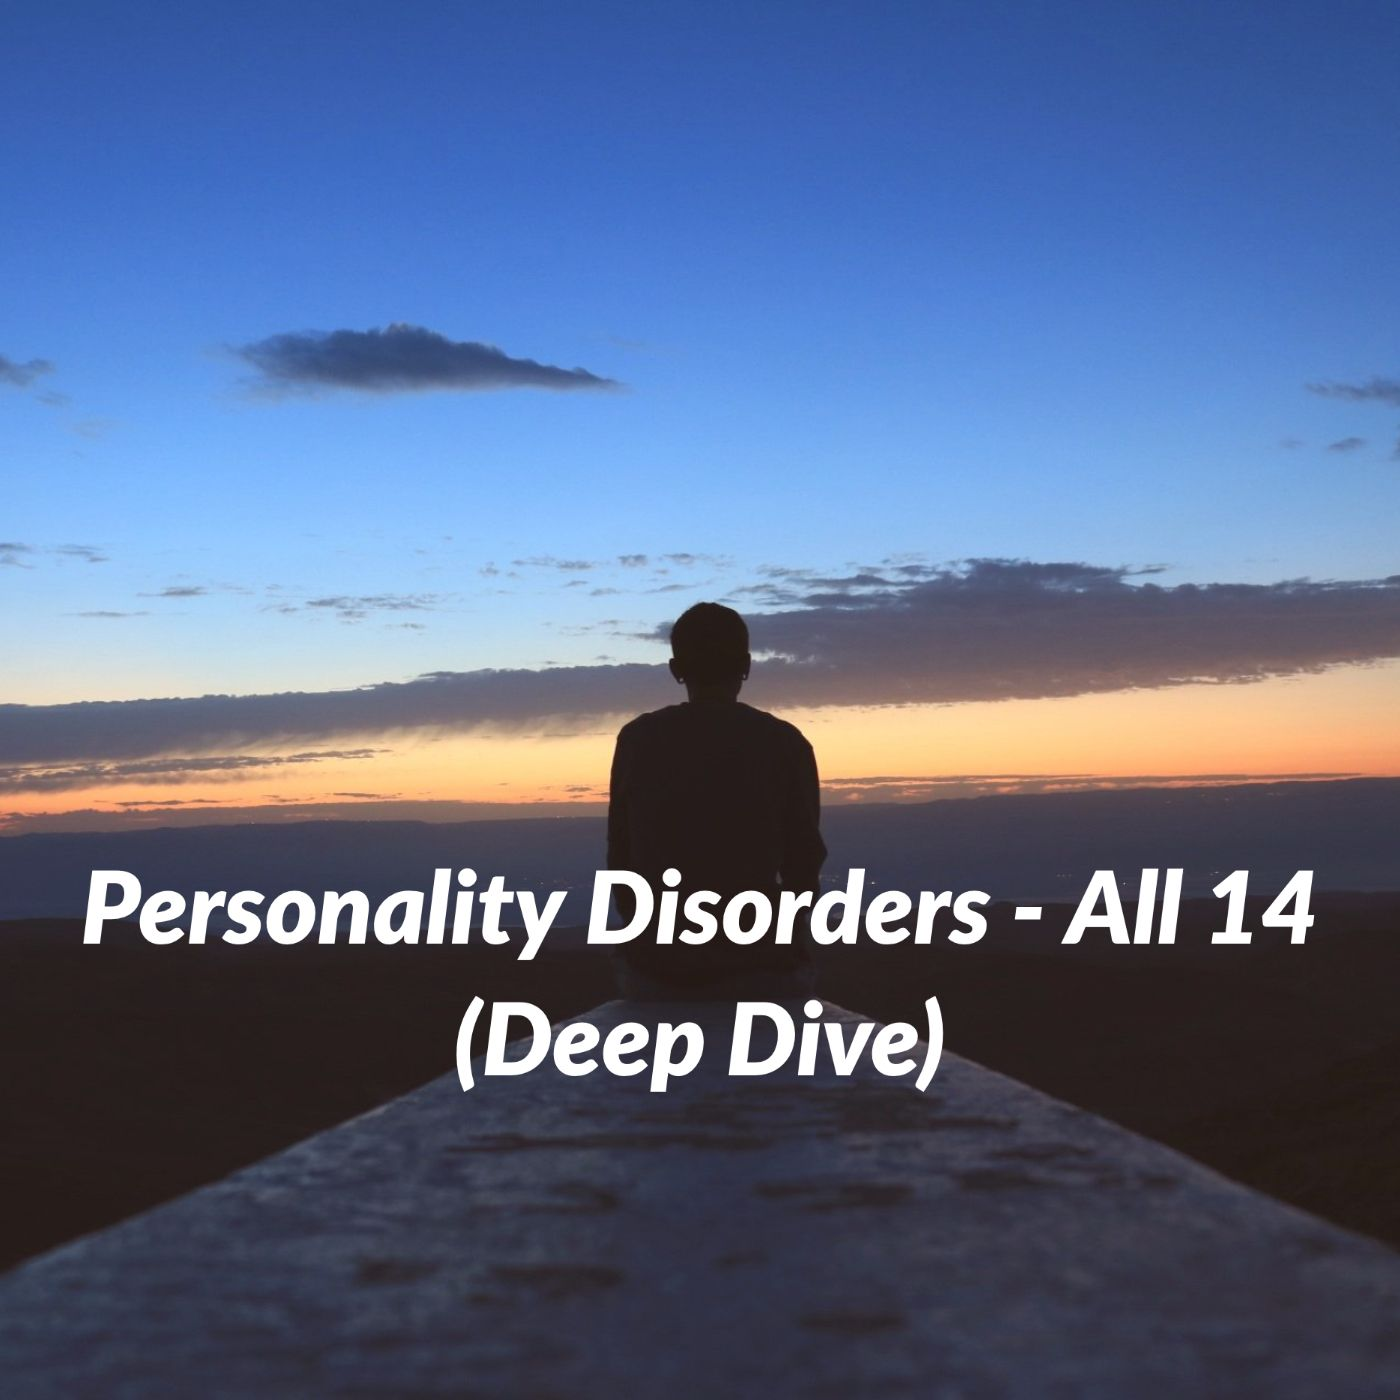 Personality Disorders - All 14 (Deep Dive)